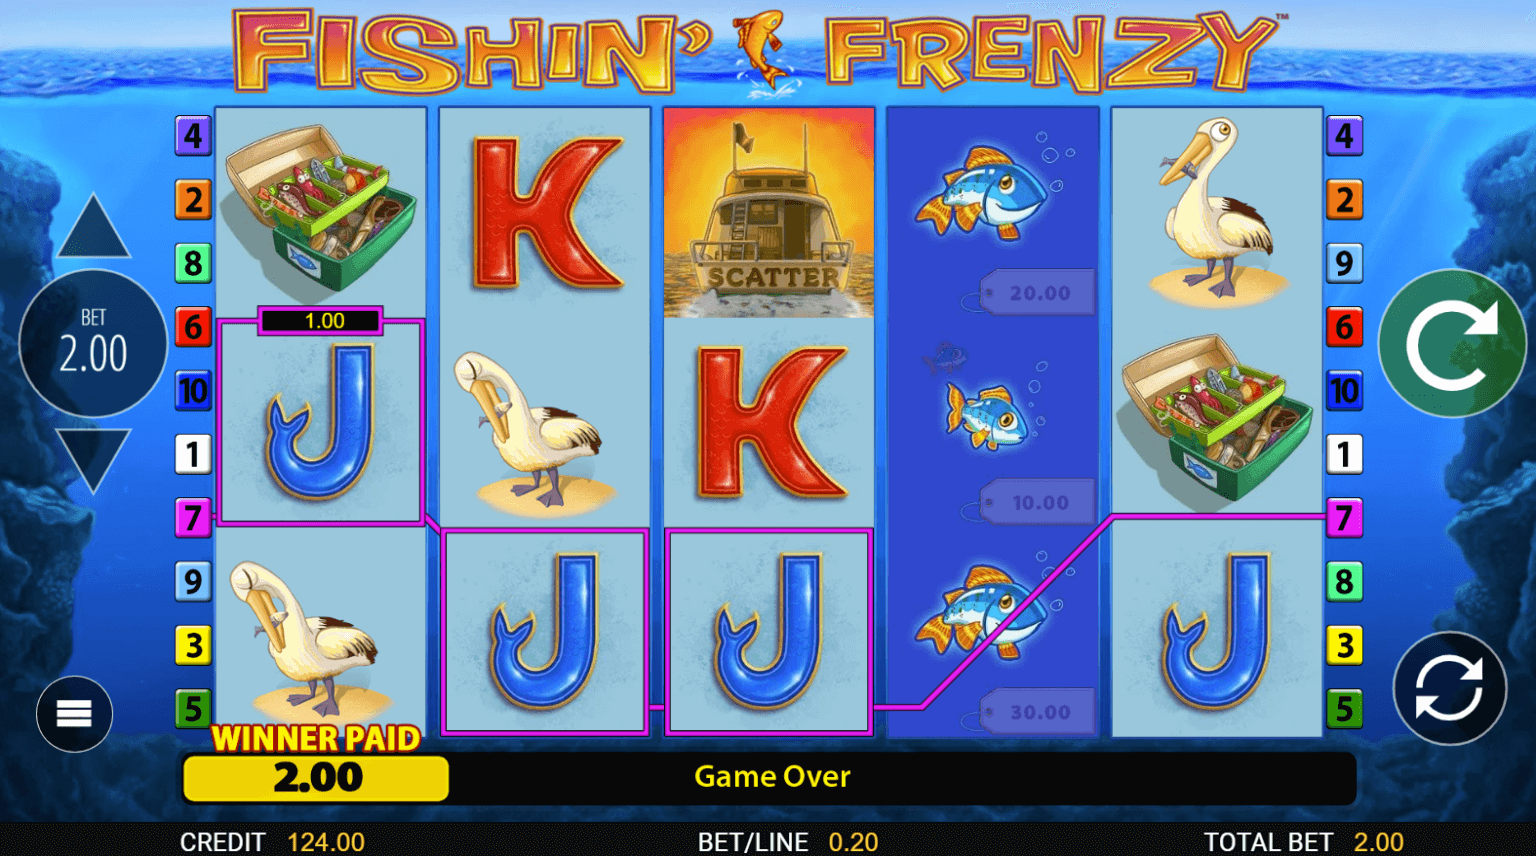 A screenshot of a fisherman themed slot called Fishin' Frenzy. The angler-themed slot is a fan-favourite at some casinos